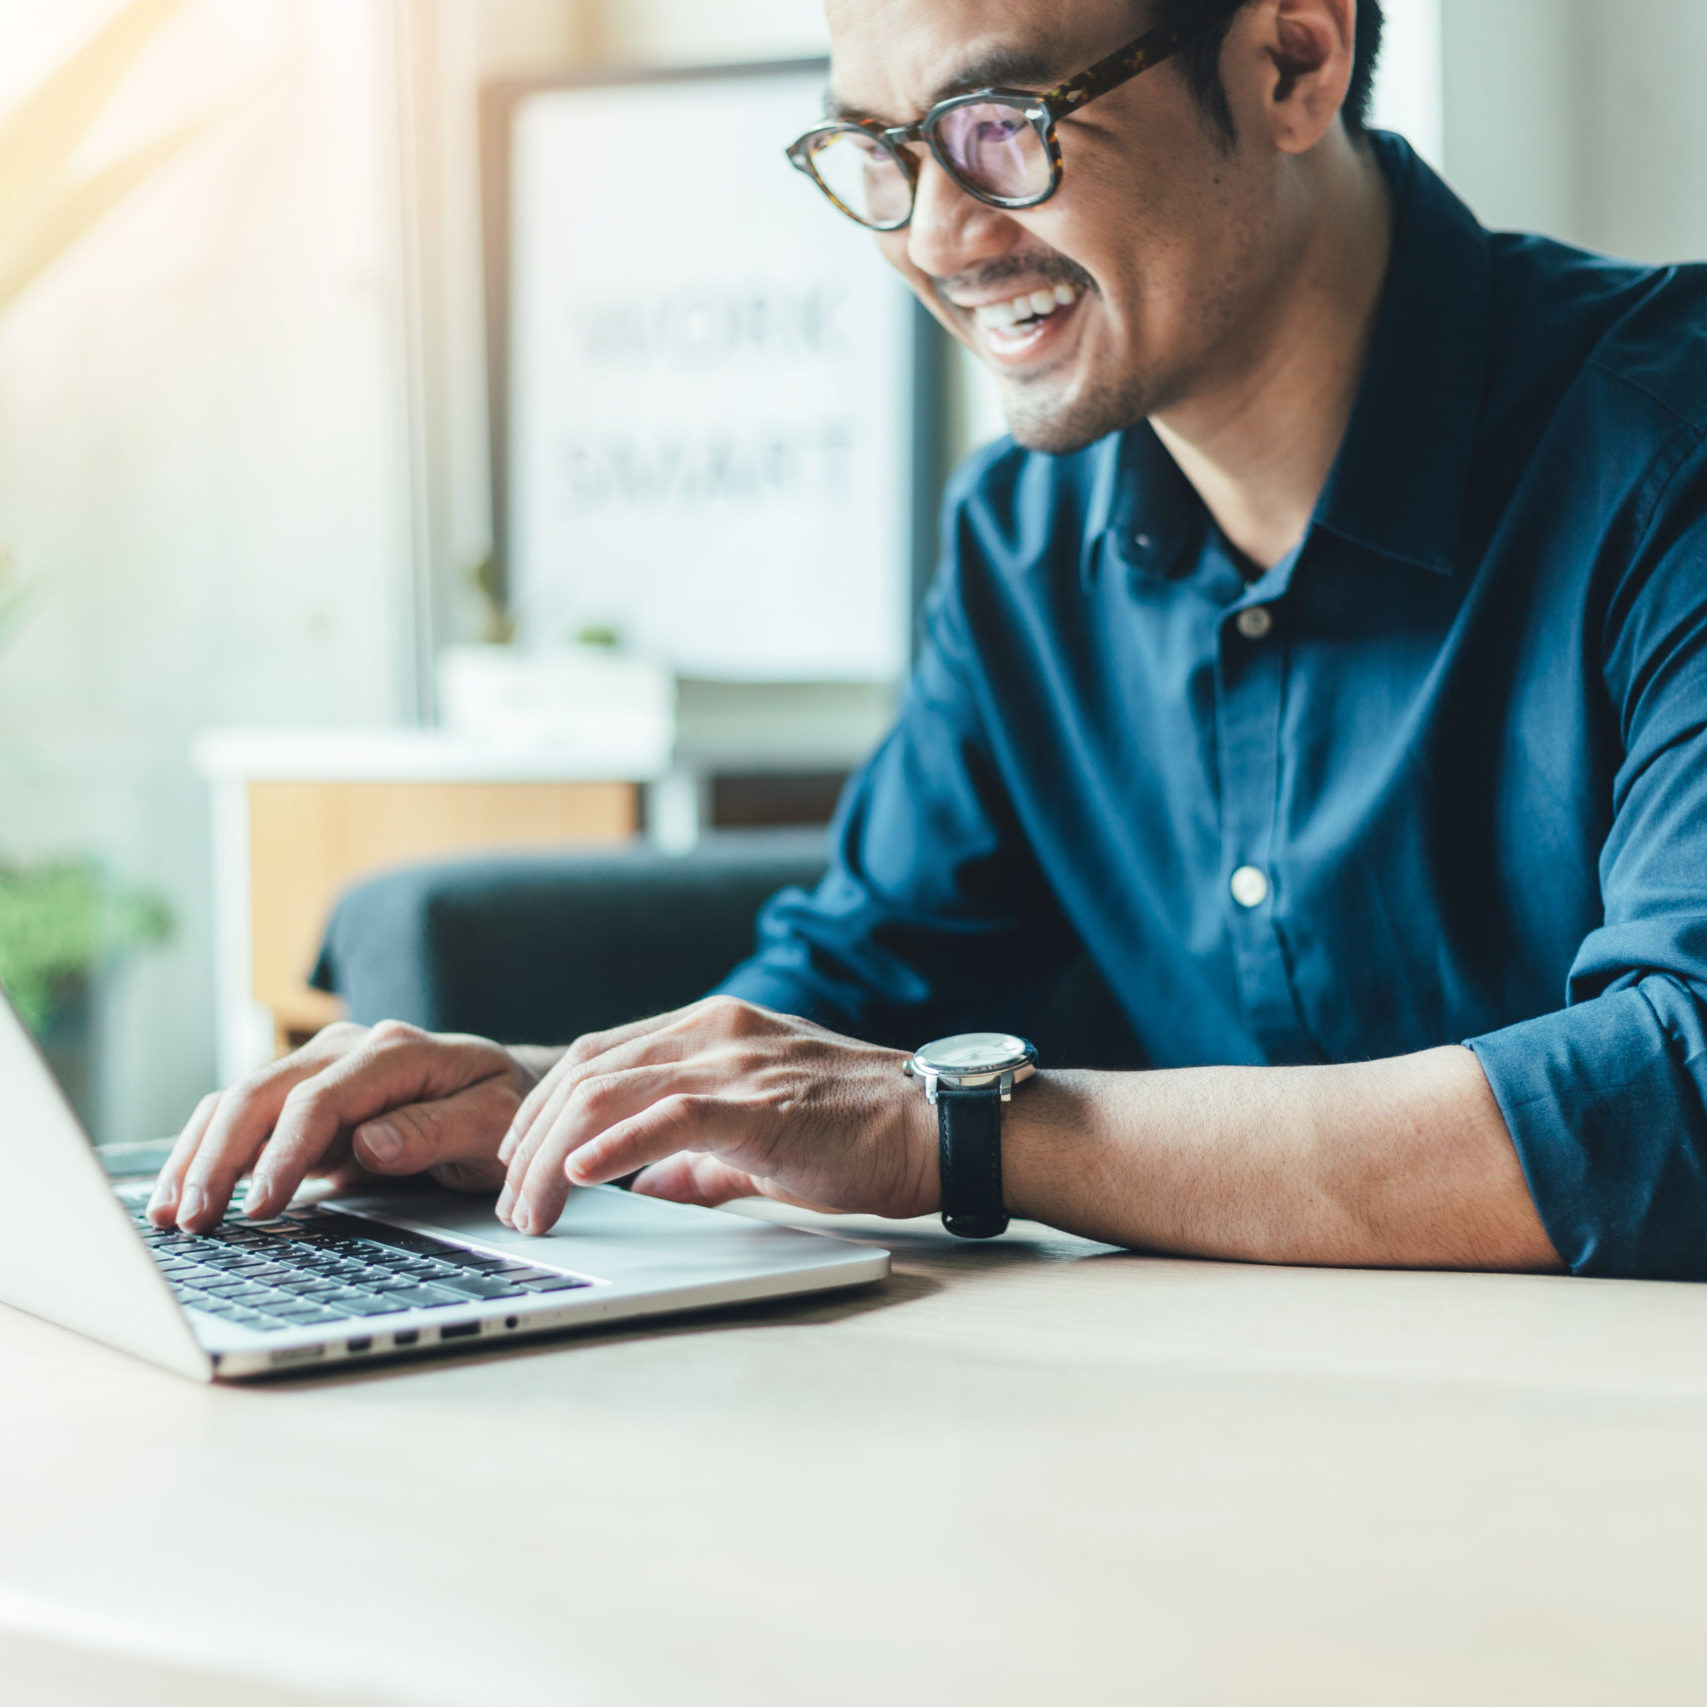 man using computer and happy